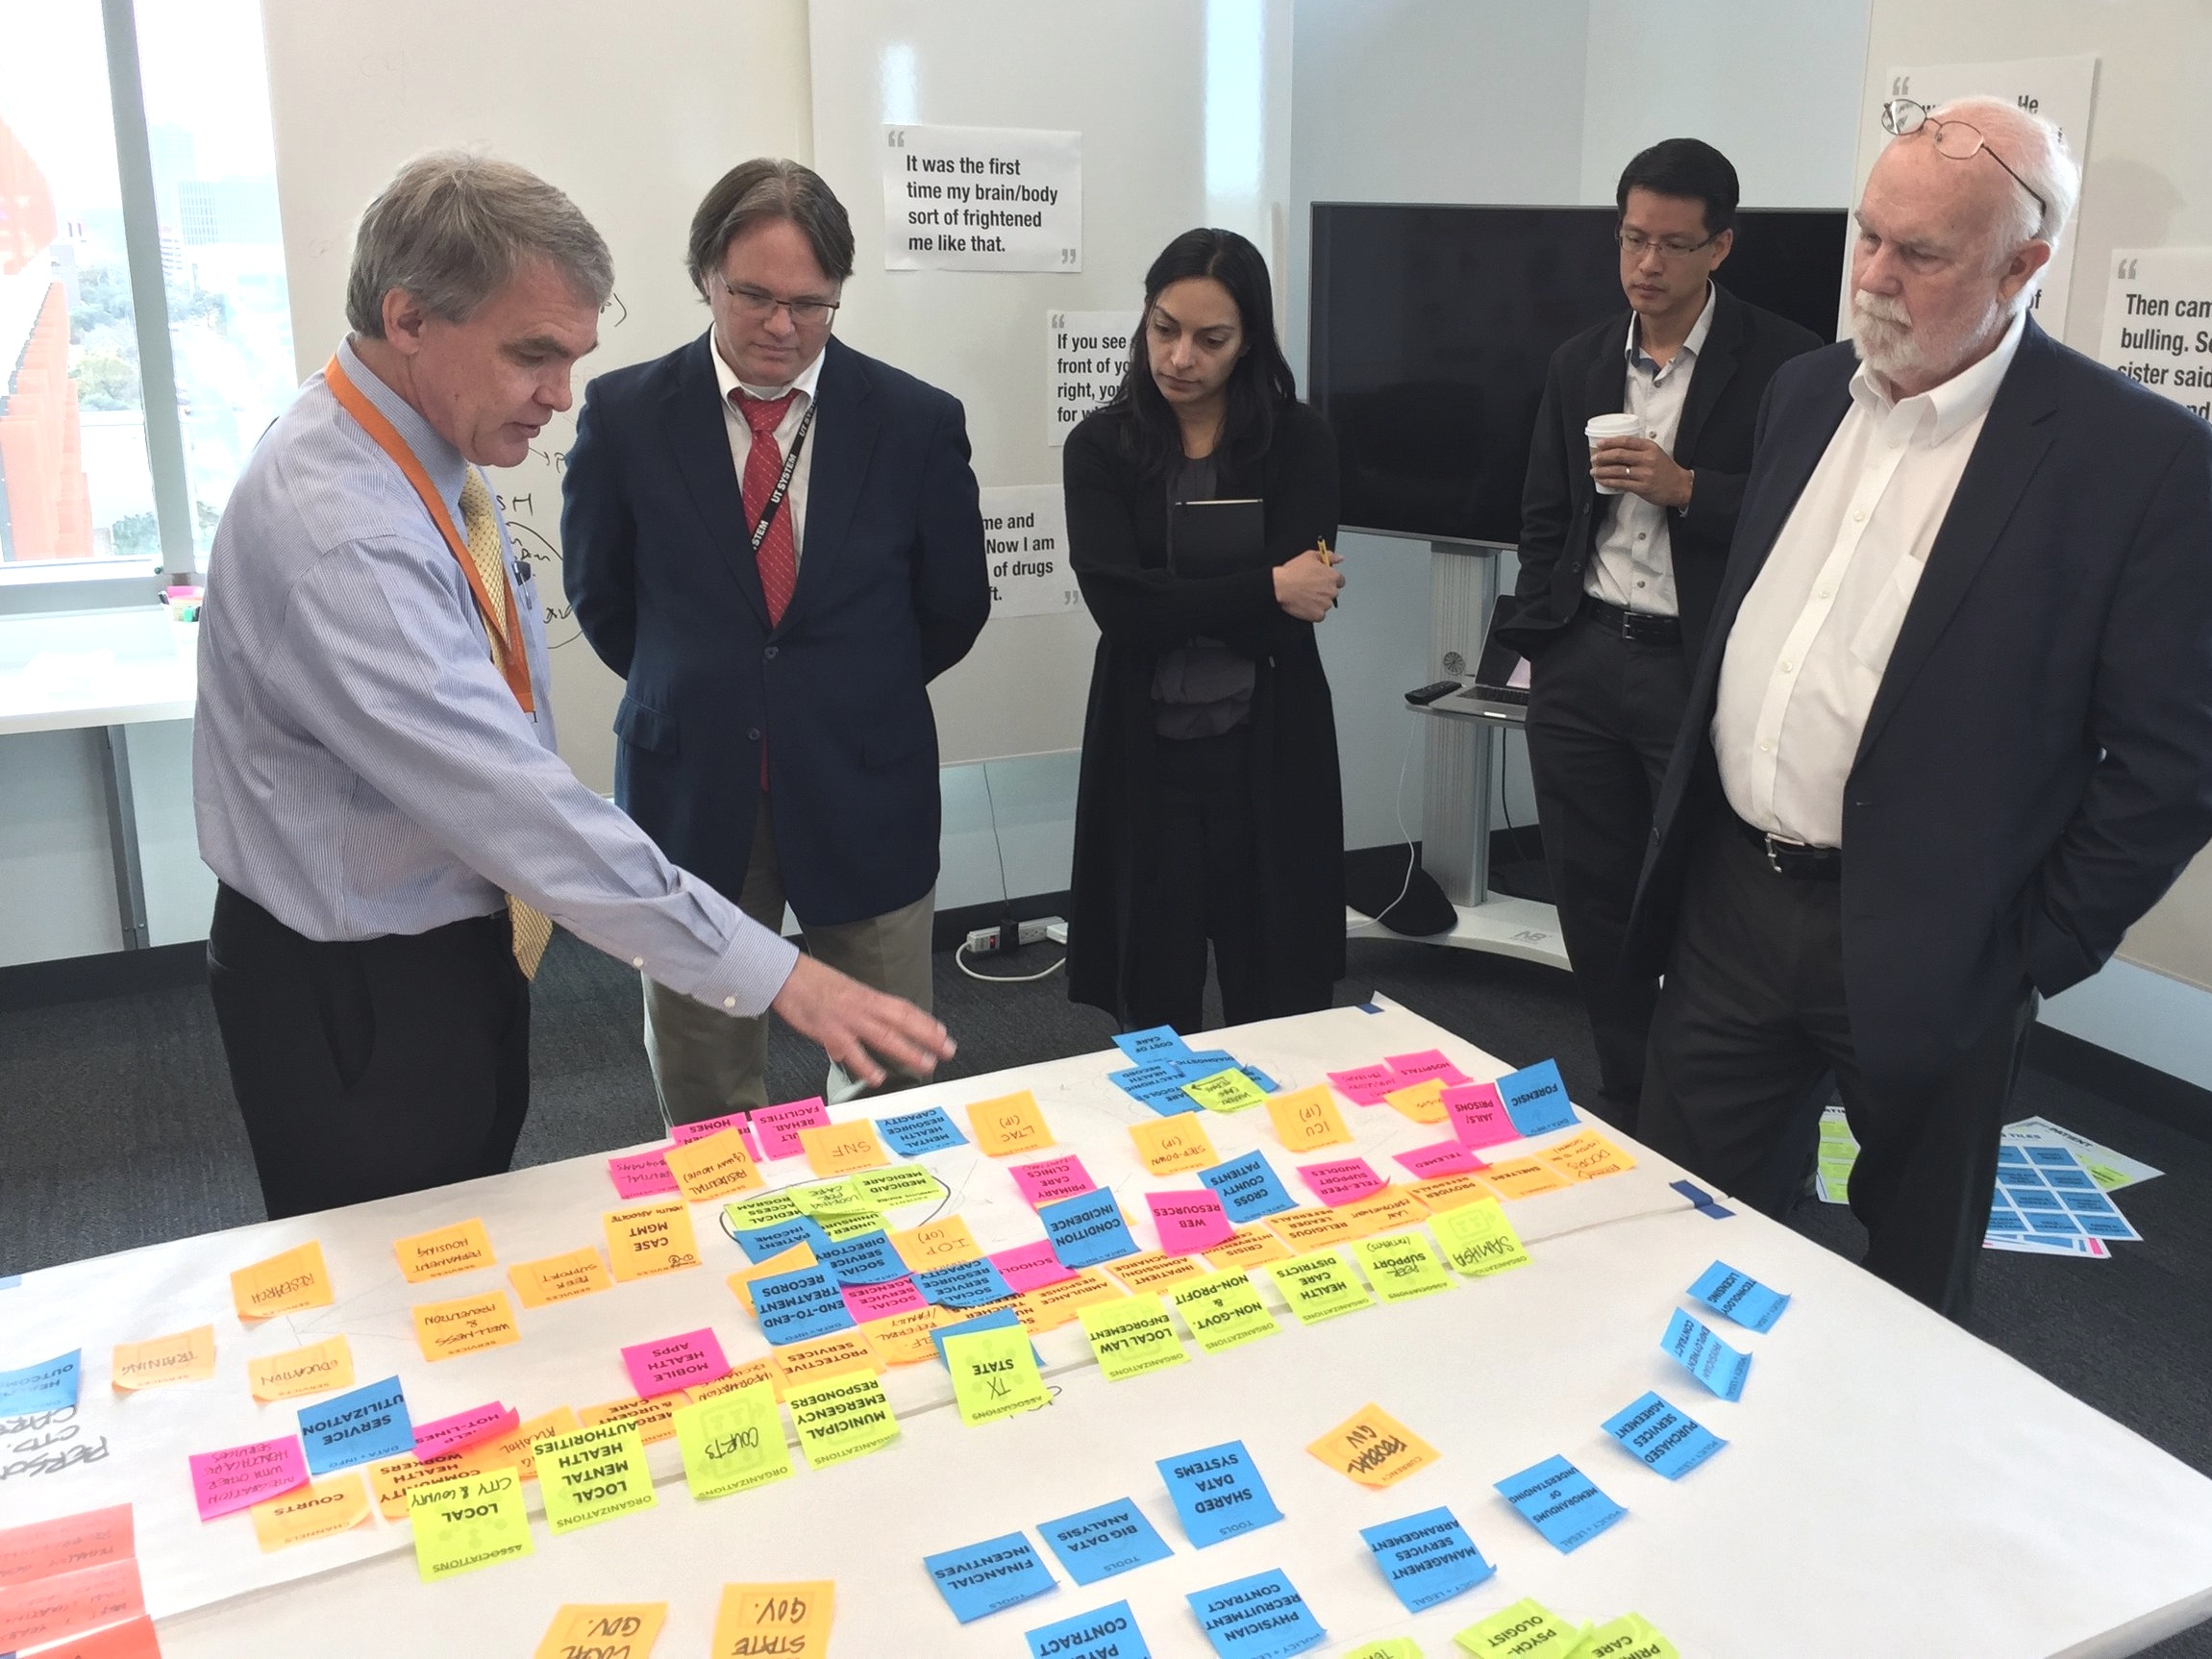 Stephen Strakowski discusses options in a workshop with Steering Committee members David Lakey (second from left) and David Evans (right) and systems designers from the Design Institute for Health.